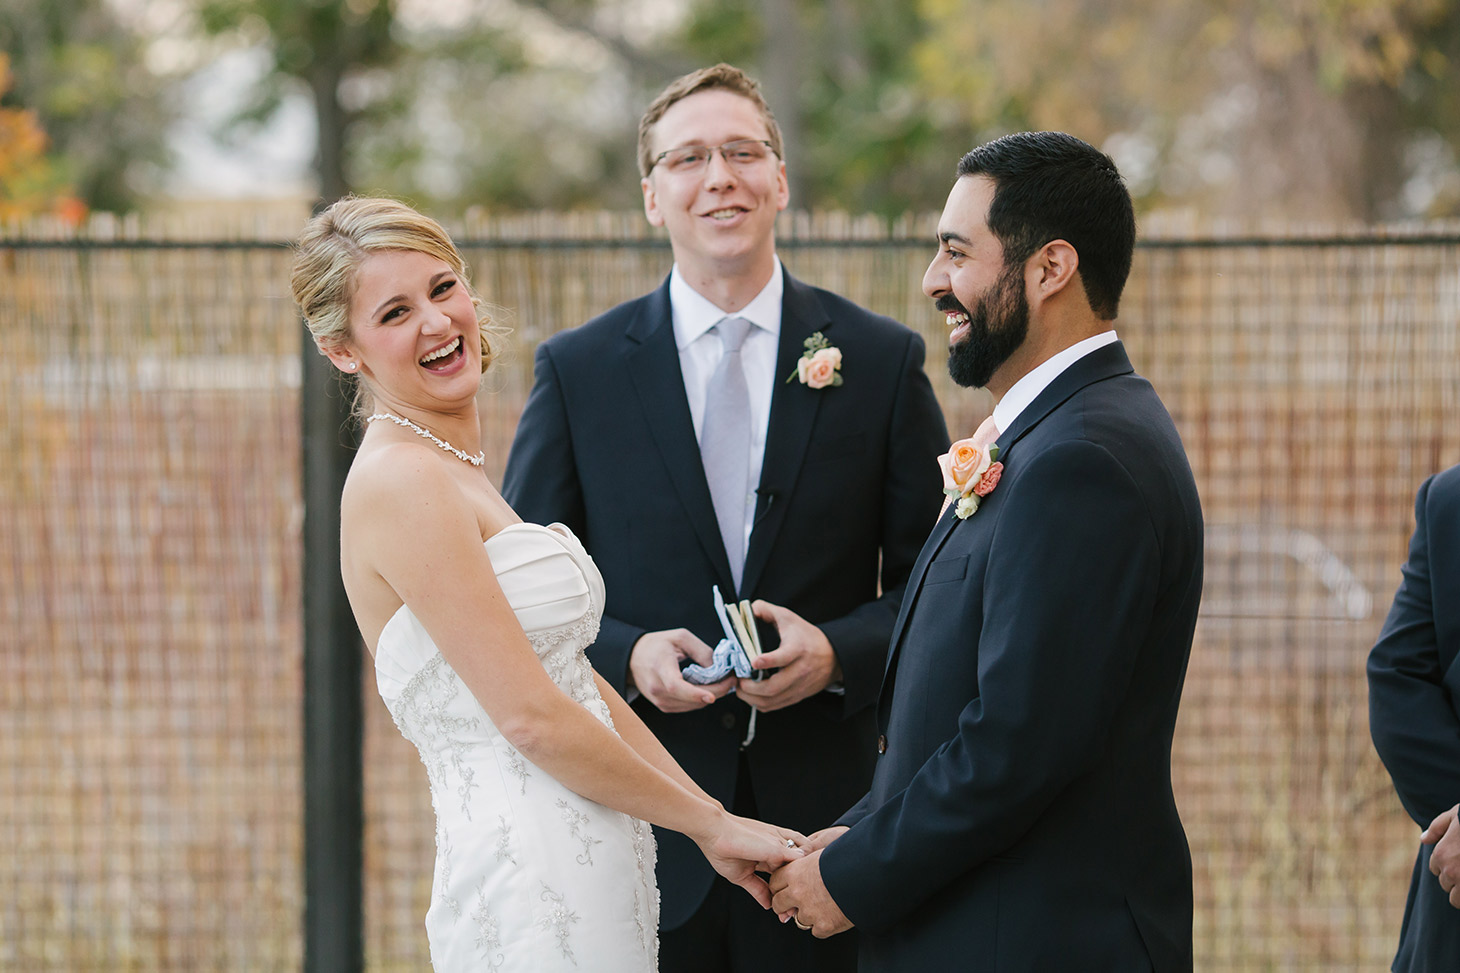 Megan-Newton-Photography-Best-Wedding-Photos-2015-186